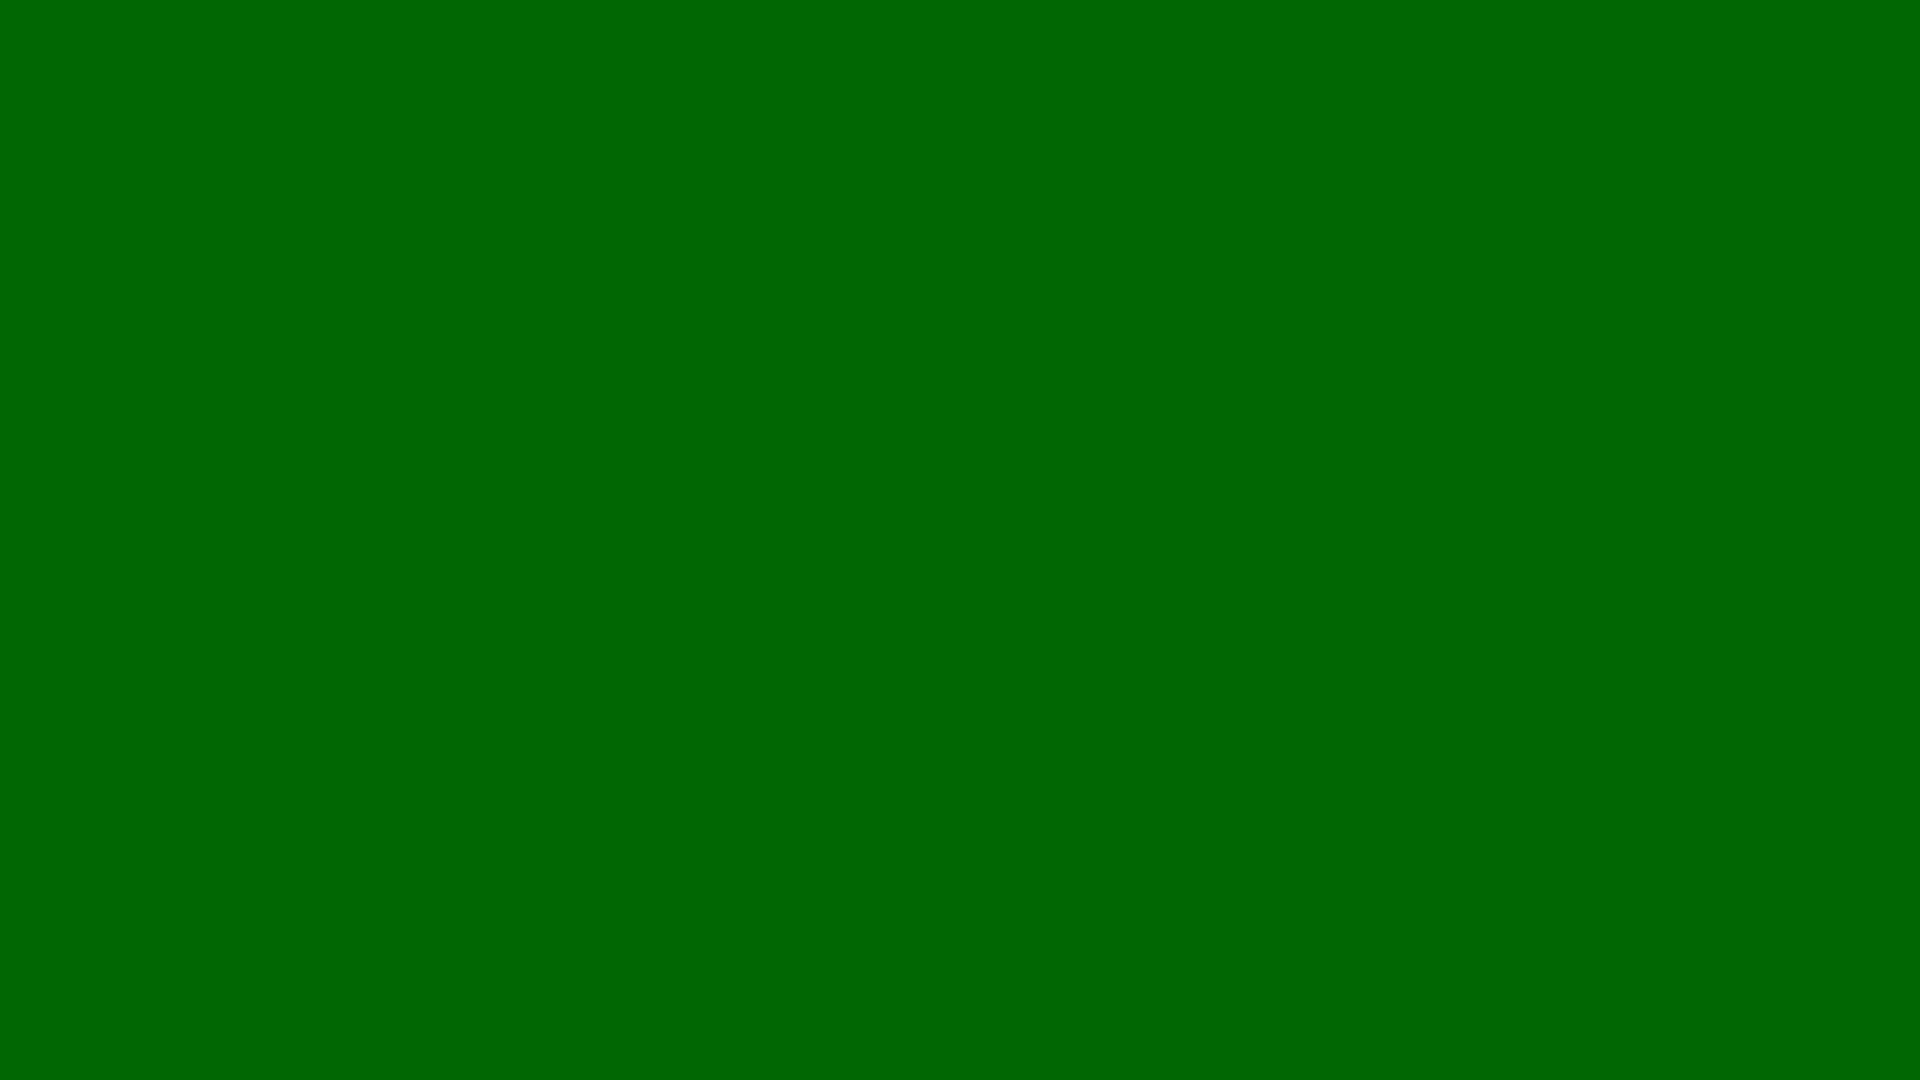 1920x1080 Pakistan Green Solid Color Background